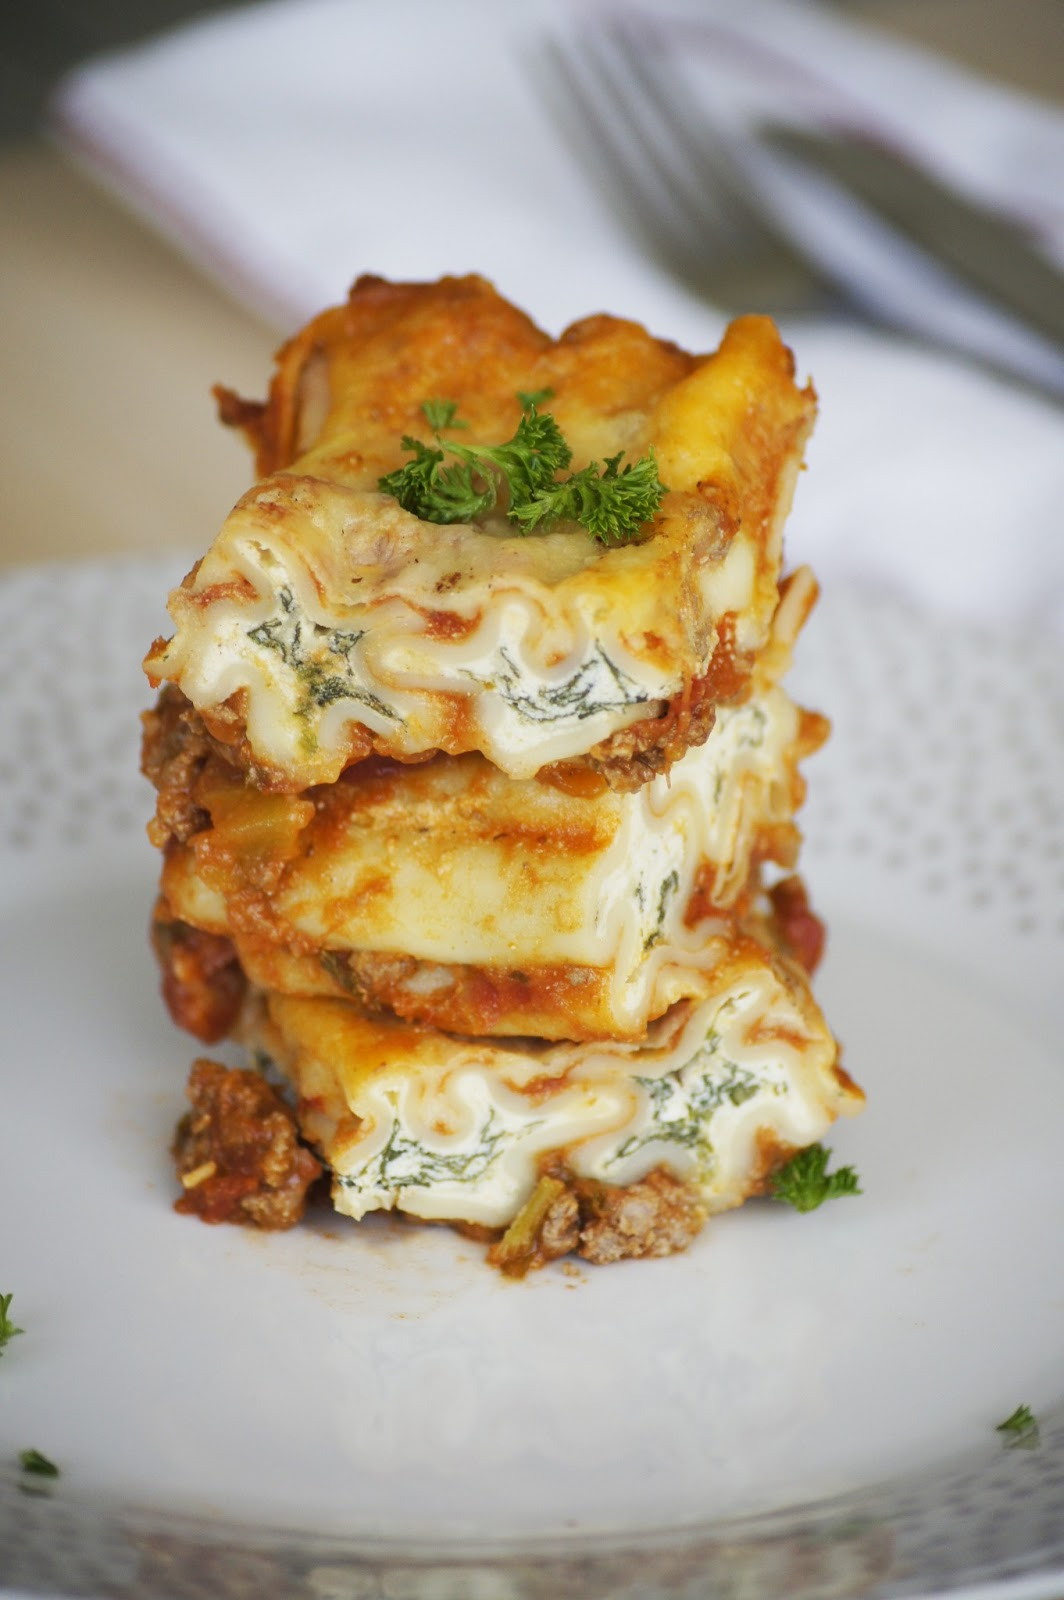 cannelloni recipe, italian pasta, lasagne recipe, ricotta and spinach